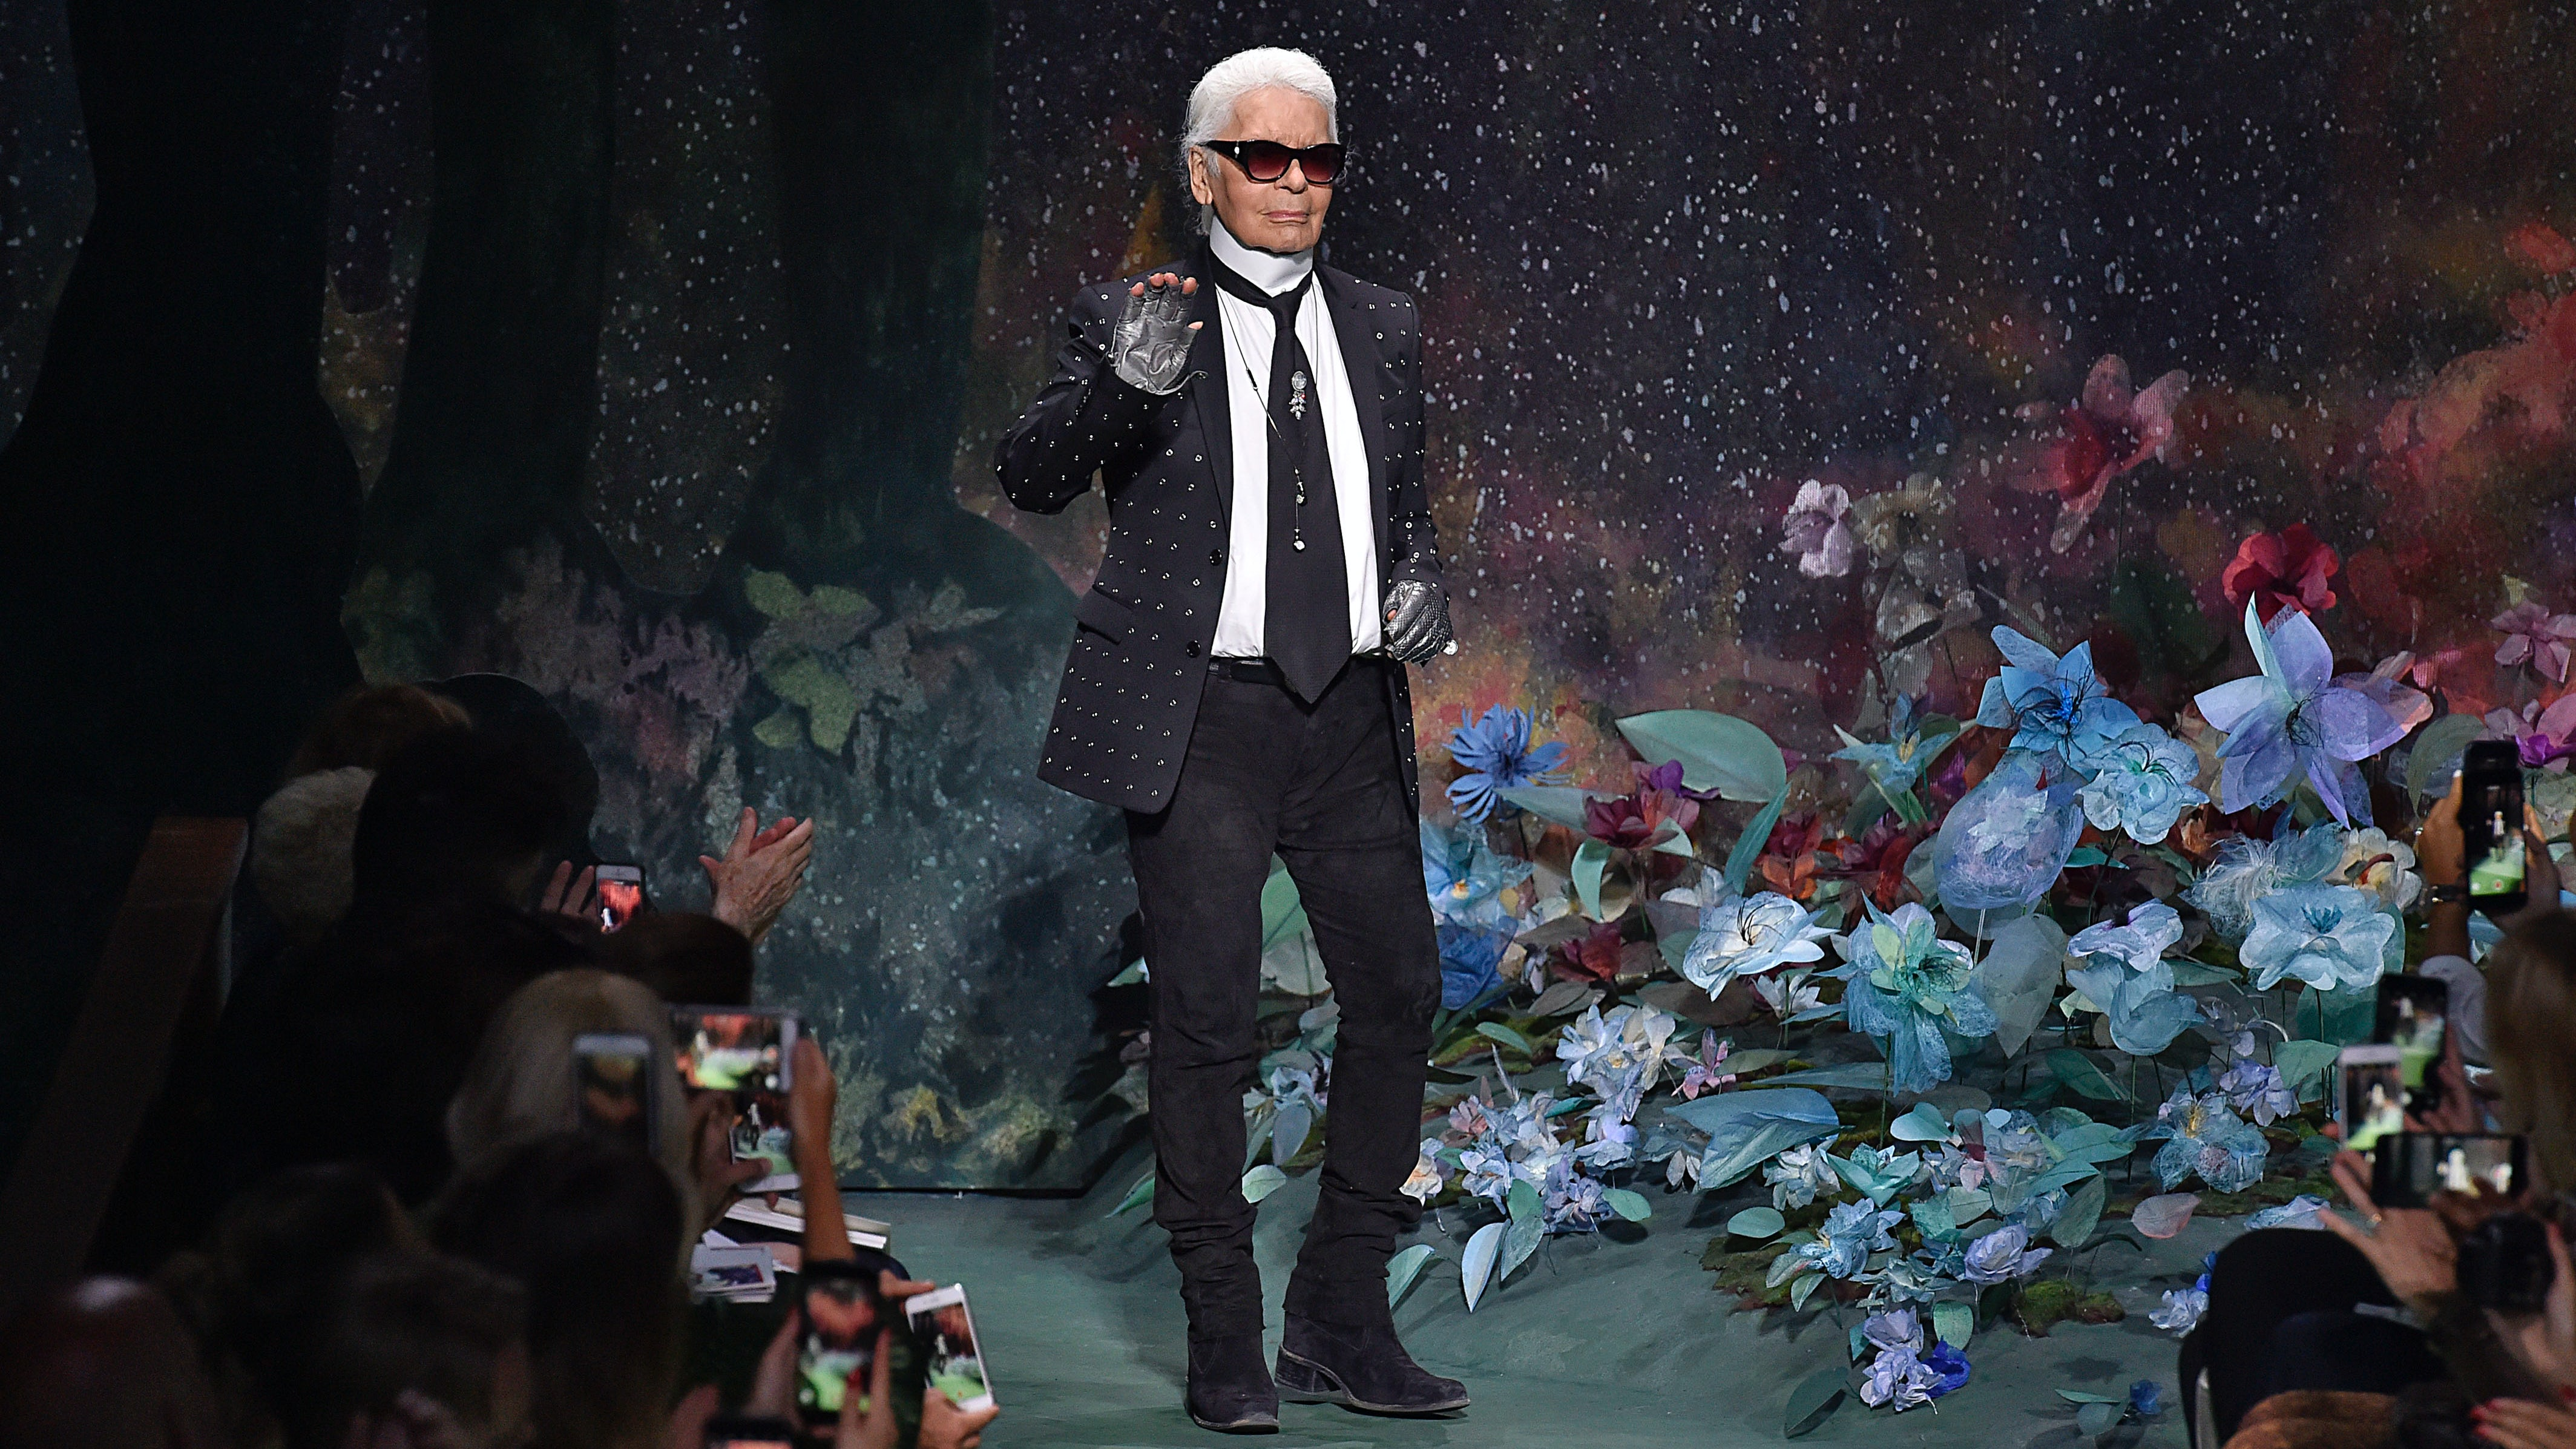 Karl Lagerfeld after the Fendi AW17 Haute Couture show | Source: Getty Images